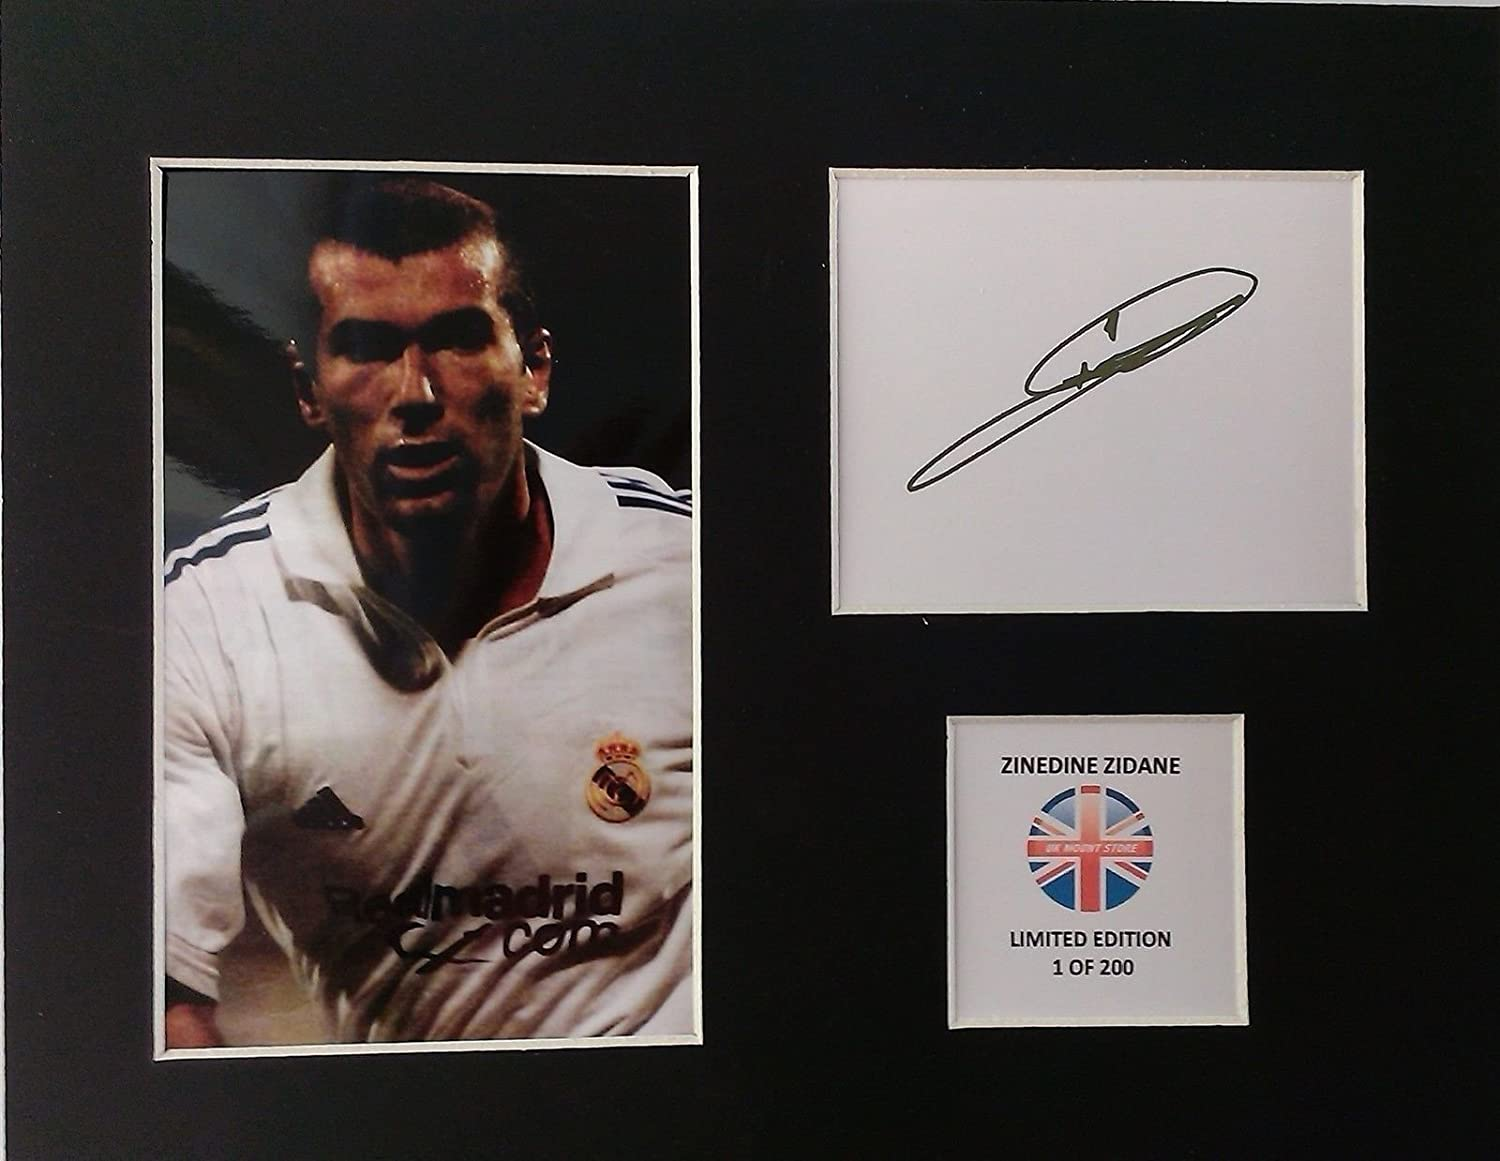 Amazon.de: ZINEDINE ZIDANE, LIMITED EDITION, SIGNIERT, DISPLAY ...